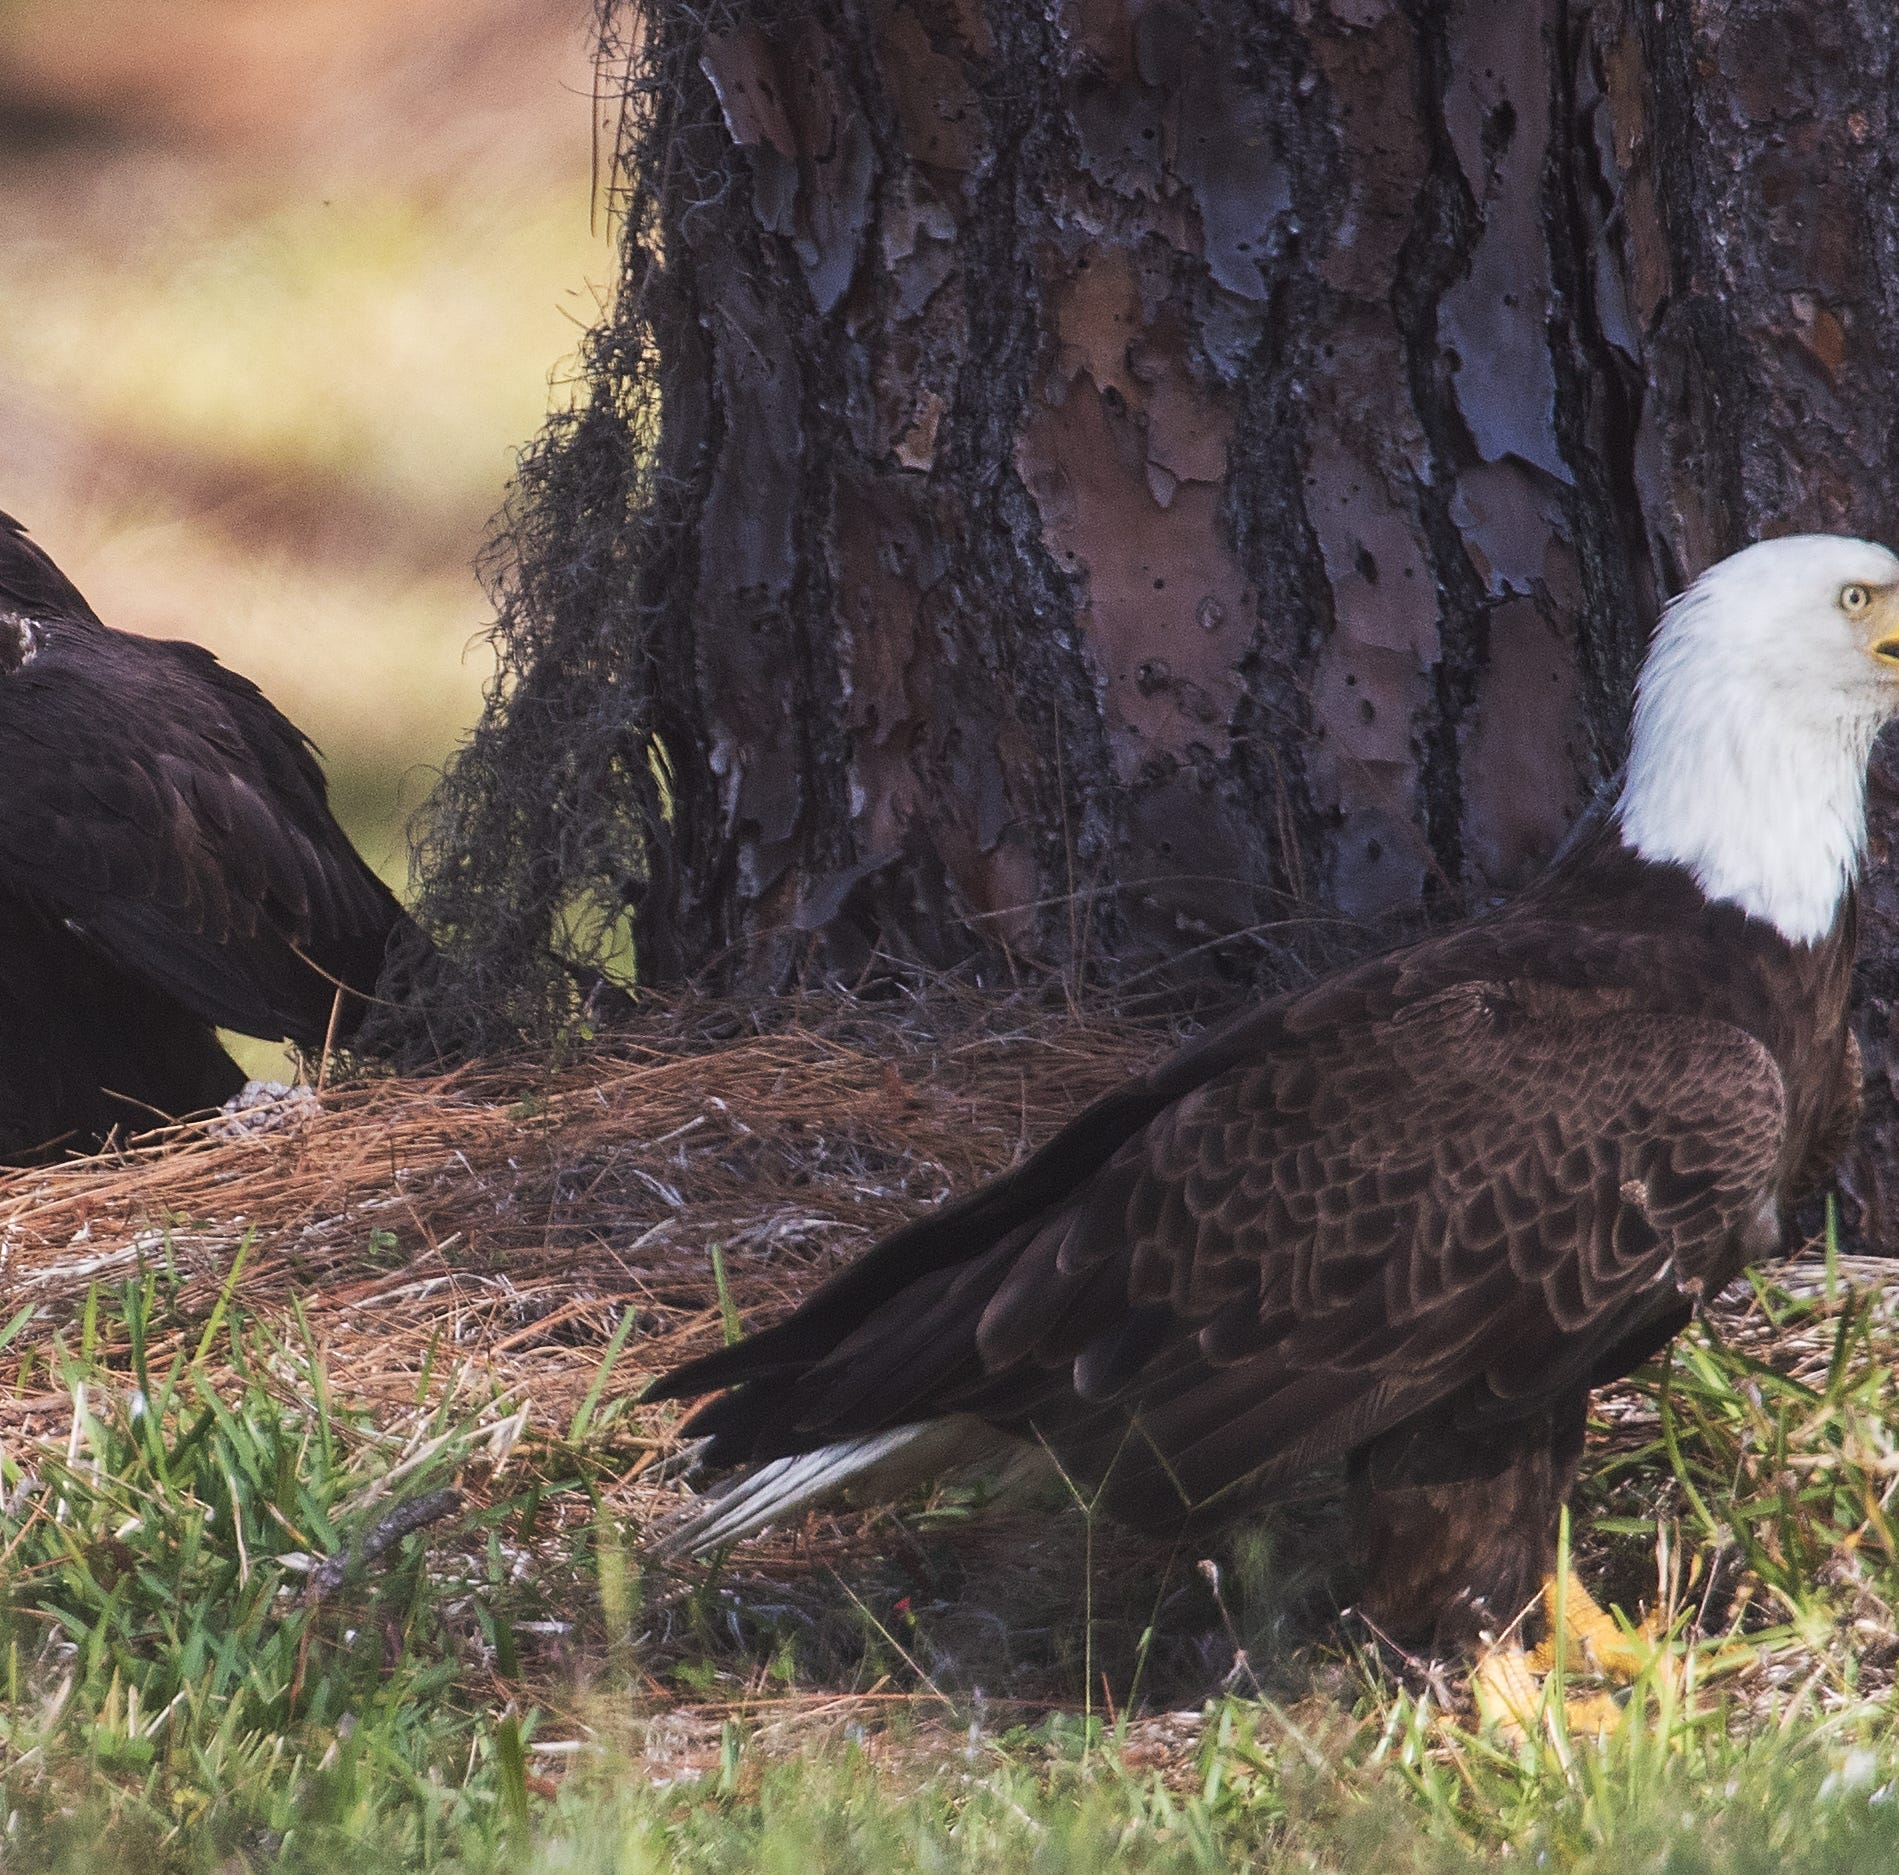 Move over Harriet and M15, there's a bigger bald eagle family in town